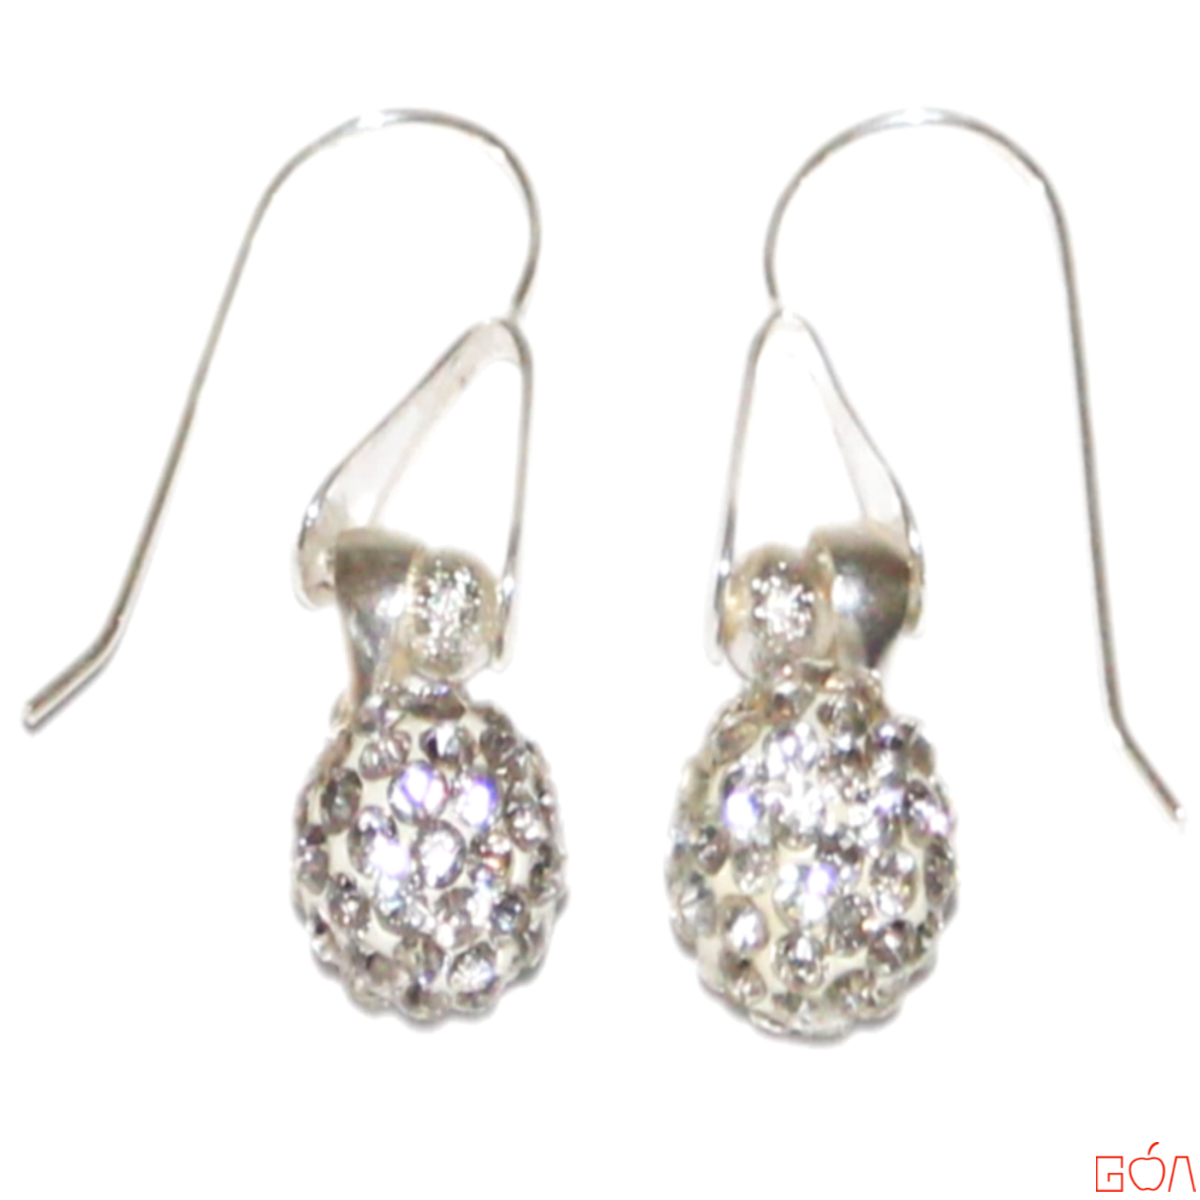 Boucles d'oreilles sur-mesure assorties au collier Light - plat - 1200x1200 - RRG